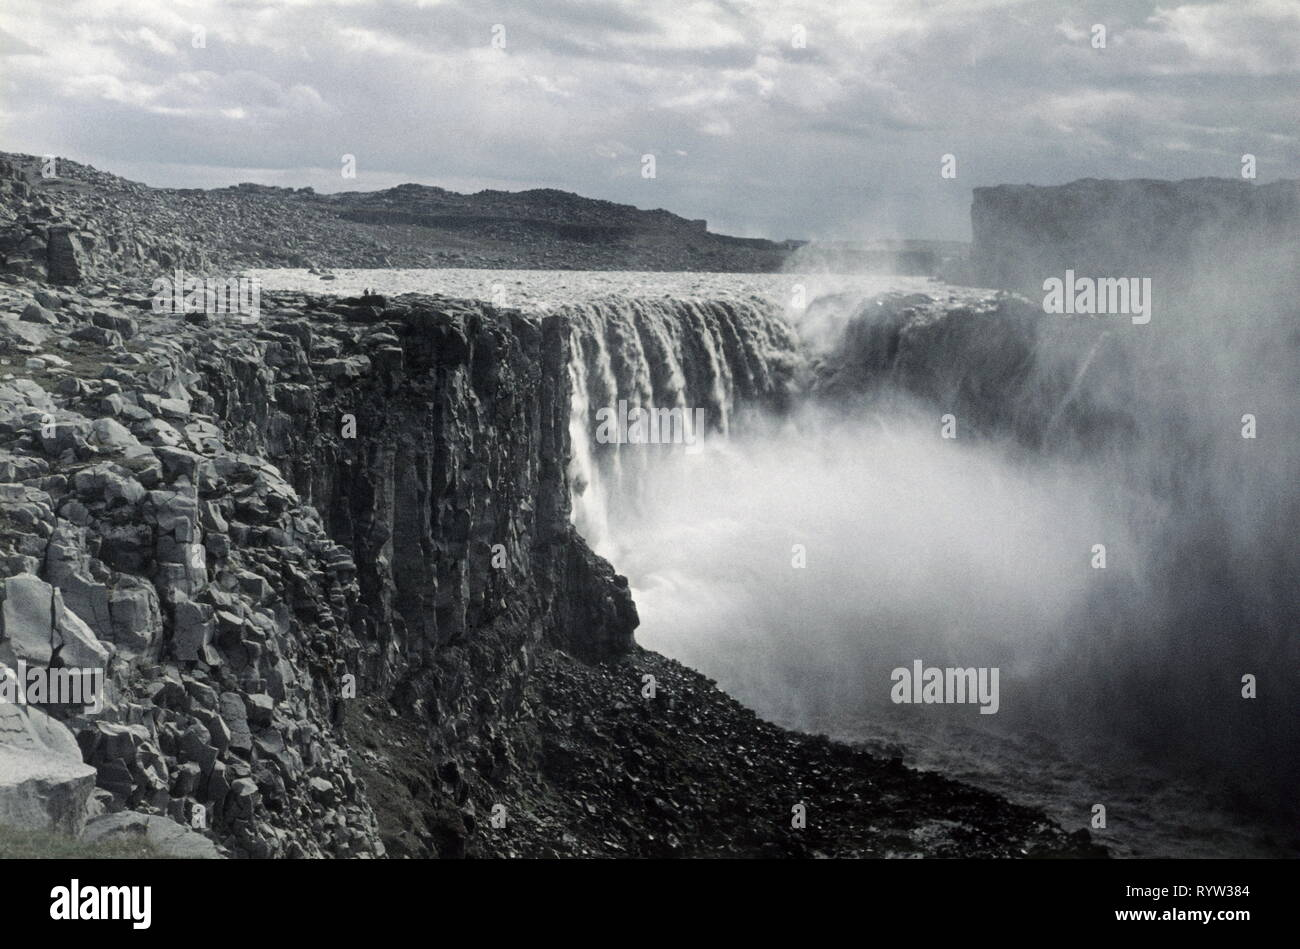 Geographie/Reisen, Island, Wasserfall Dettifoss, 1957, Additional-Rights - Clearance-Info - Not-Available Stockbild